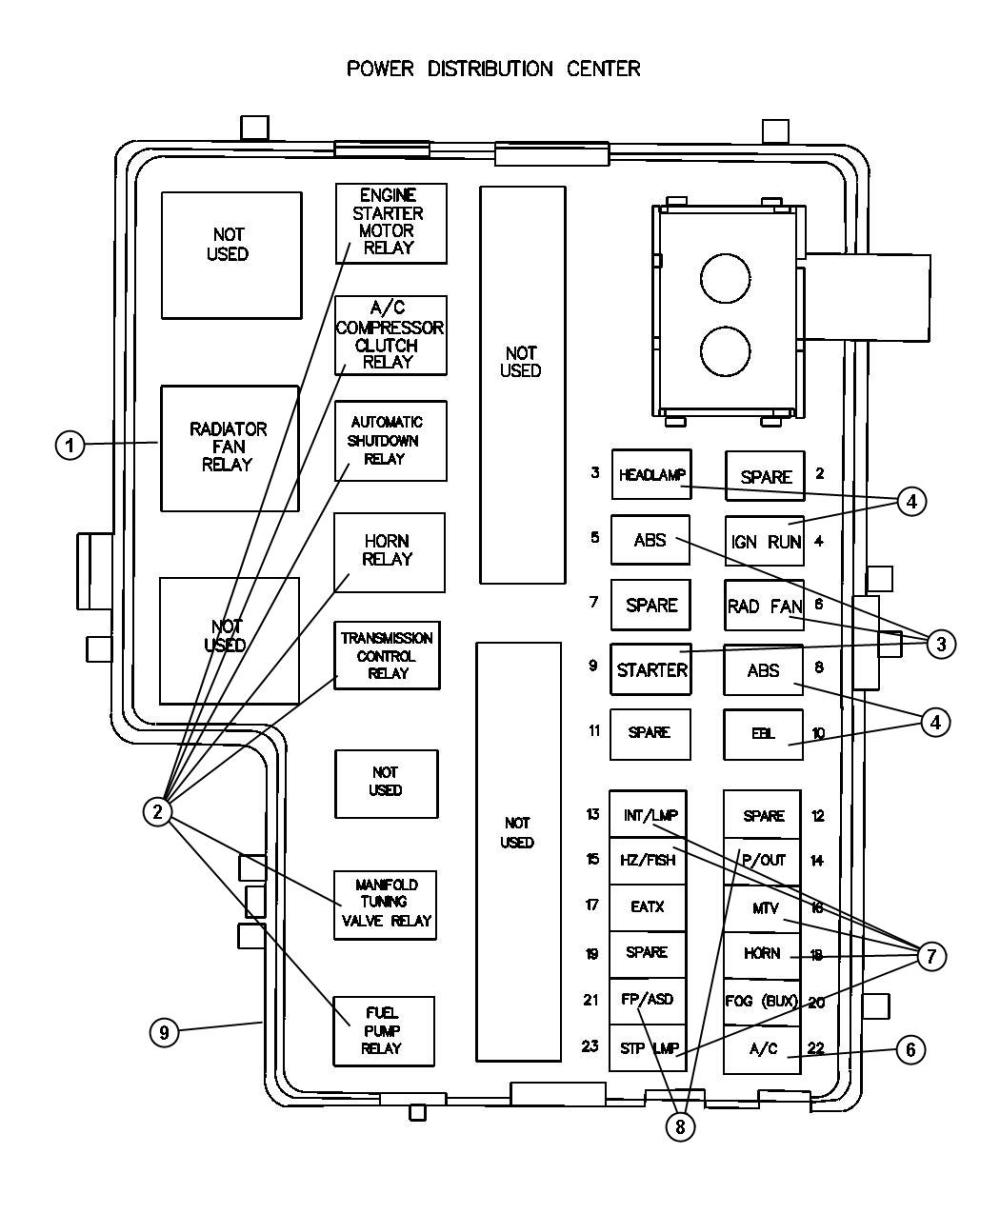 medium resolution of 2005 dodge stratus fuse box diagram schematic diagram 2003 ford contour fuse box fuse diagram for